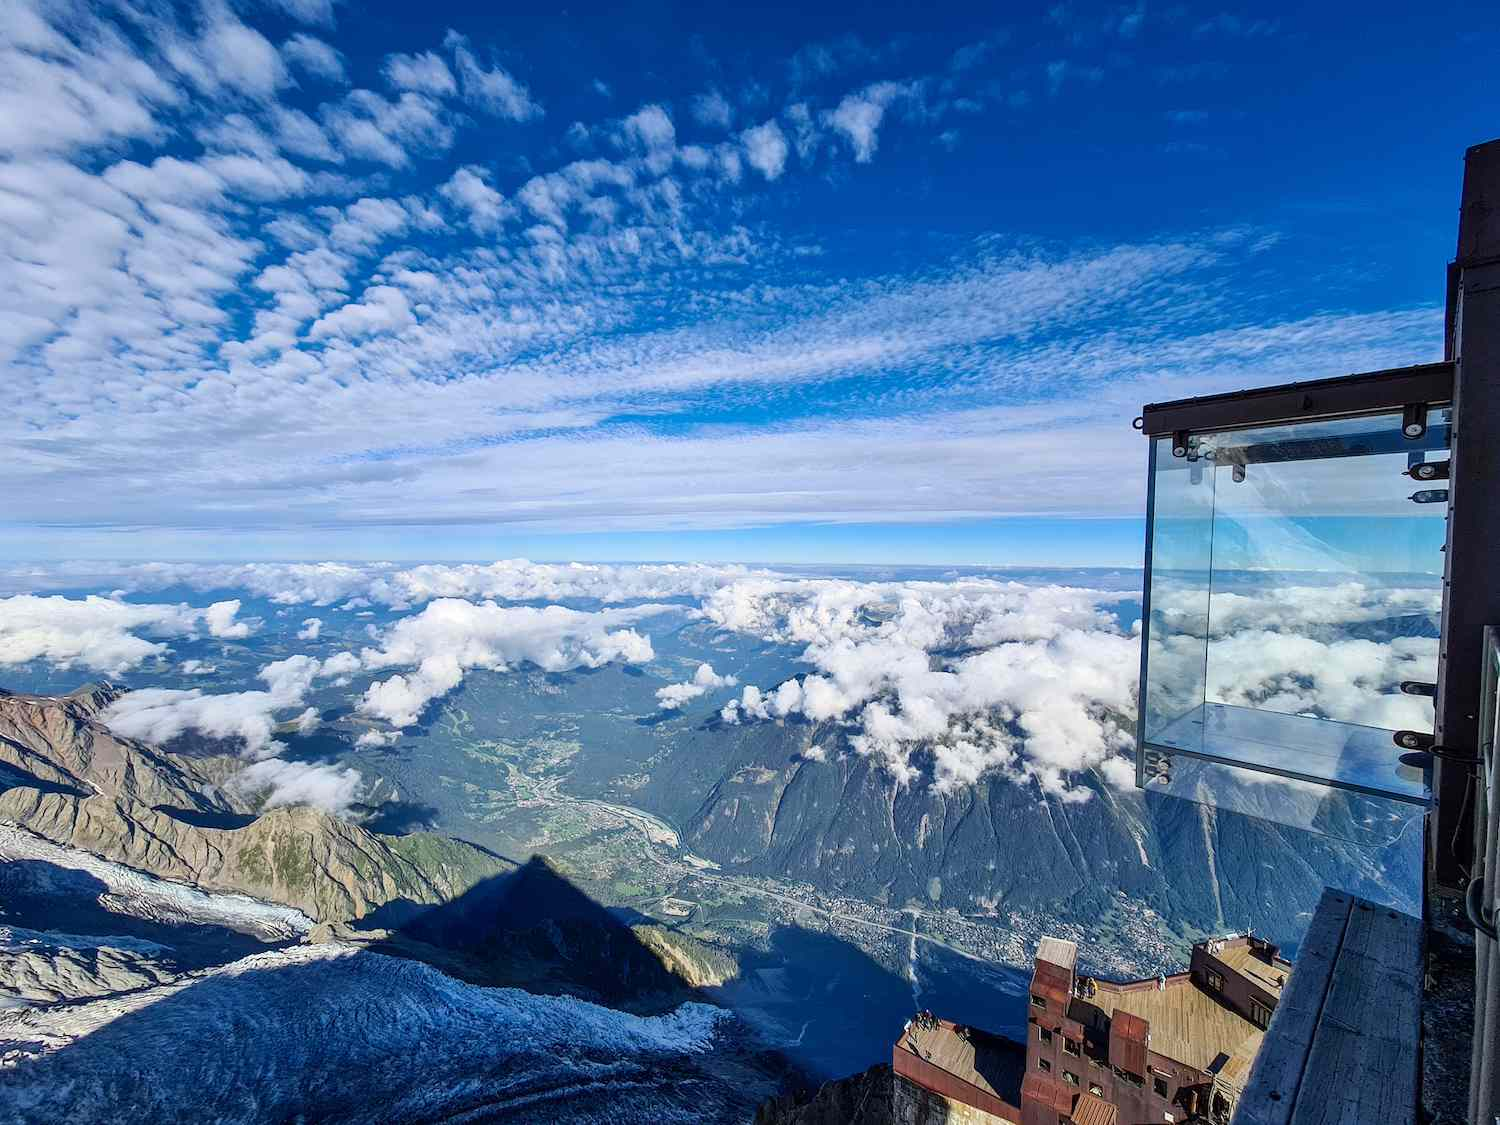 A glass room called Step Into the Void hangs over a ledge in the French Alps